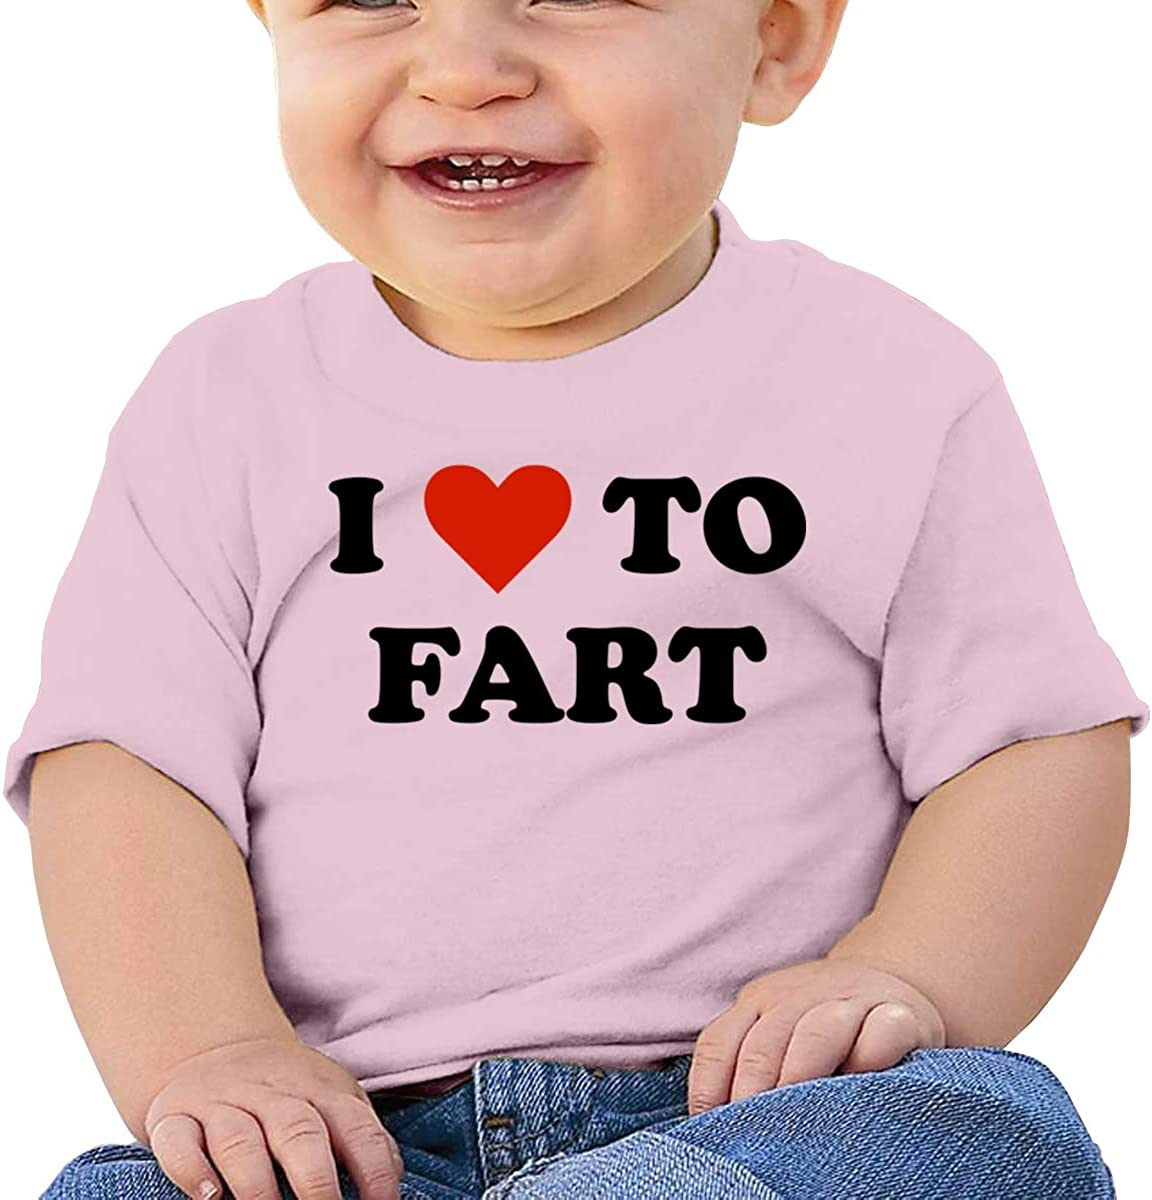 I Love to Fart 2 Baby Boys 100/% Cotton Tees Toddler